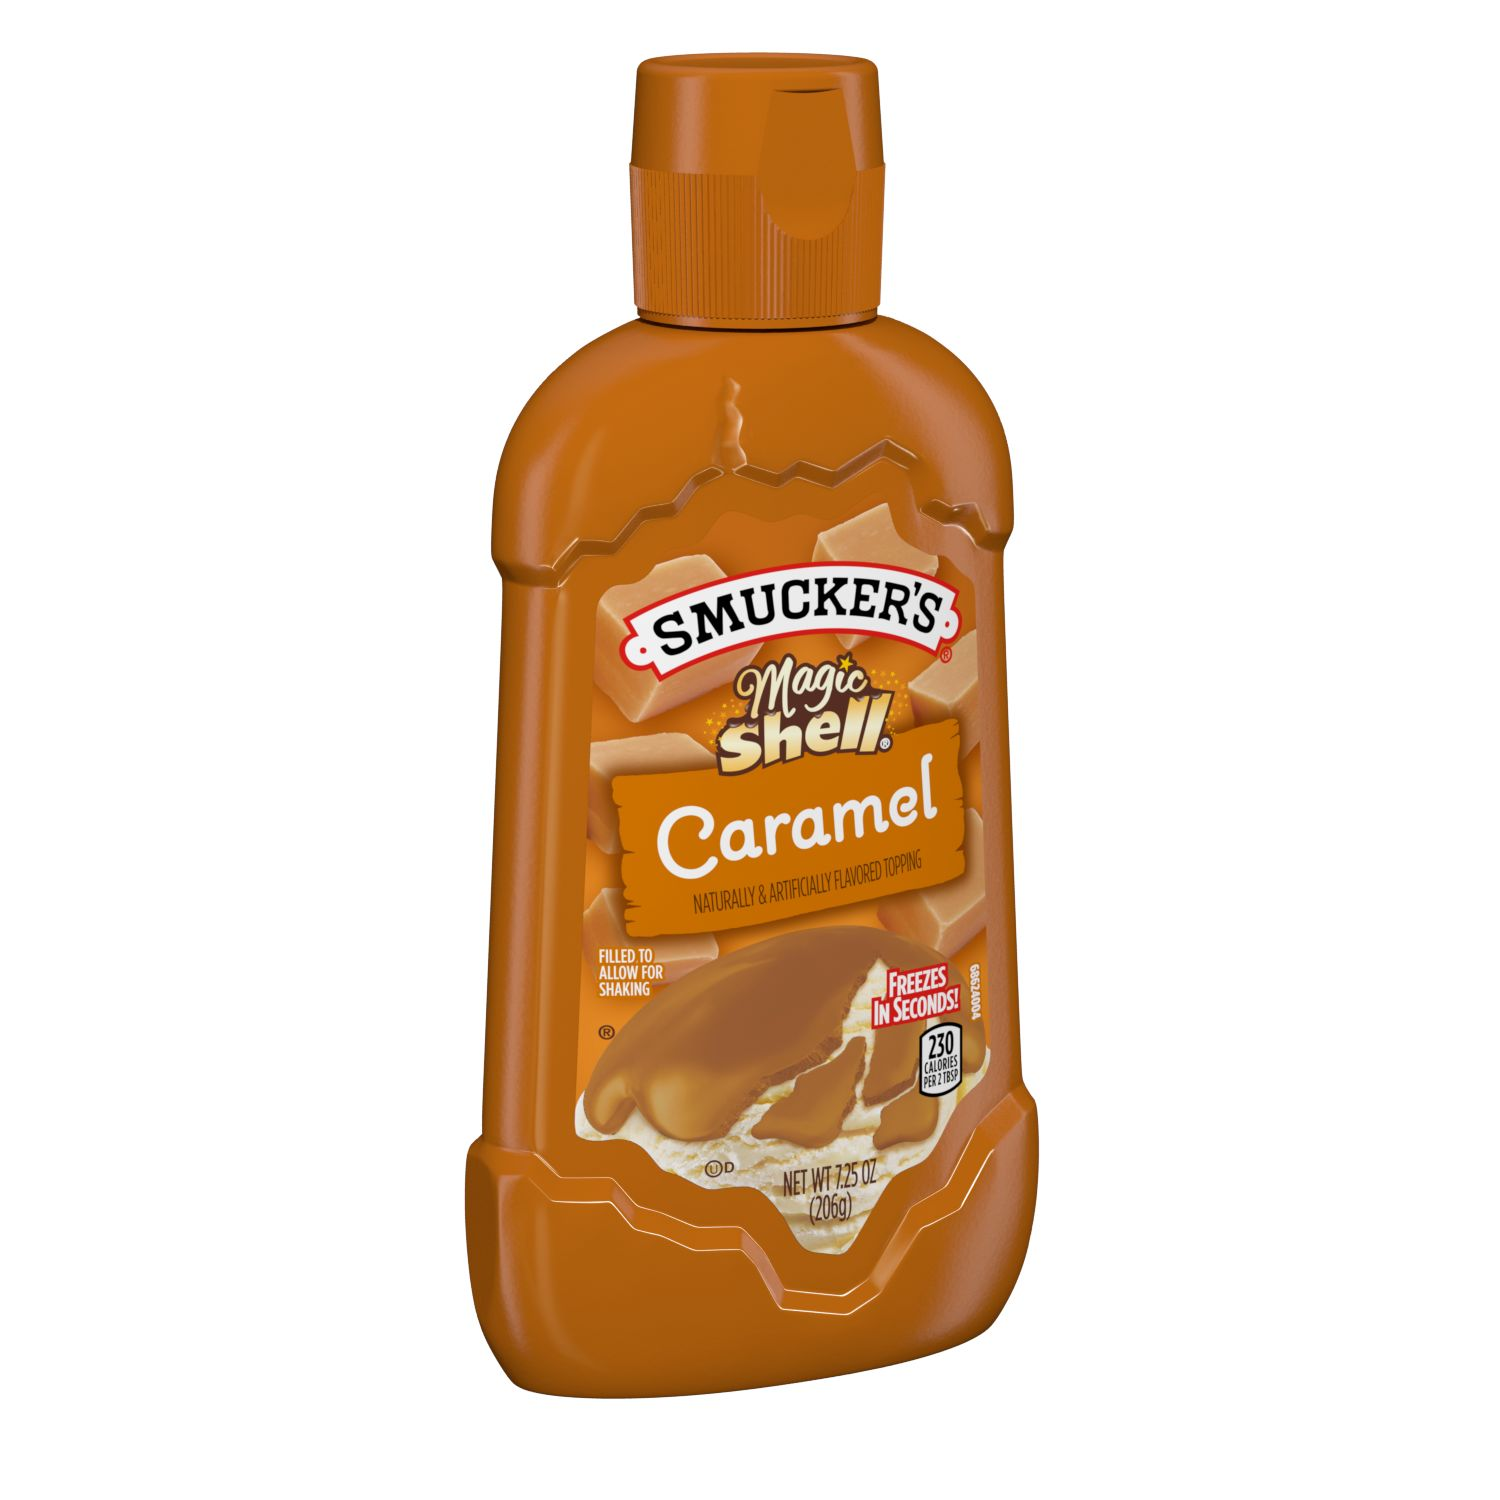 Smucker's Magic Shell Caramel Topping